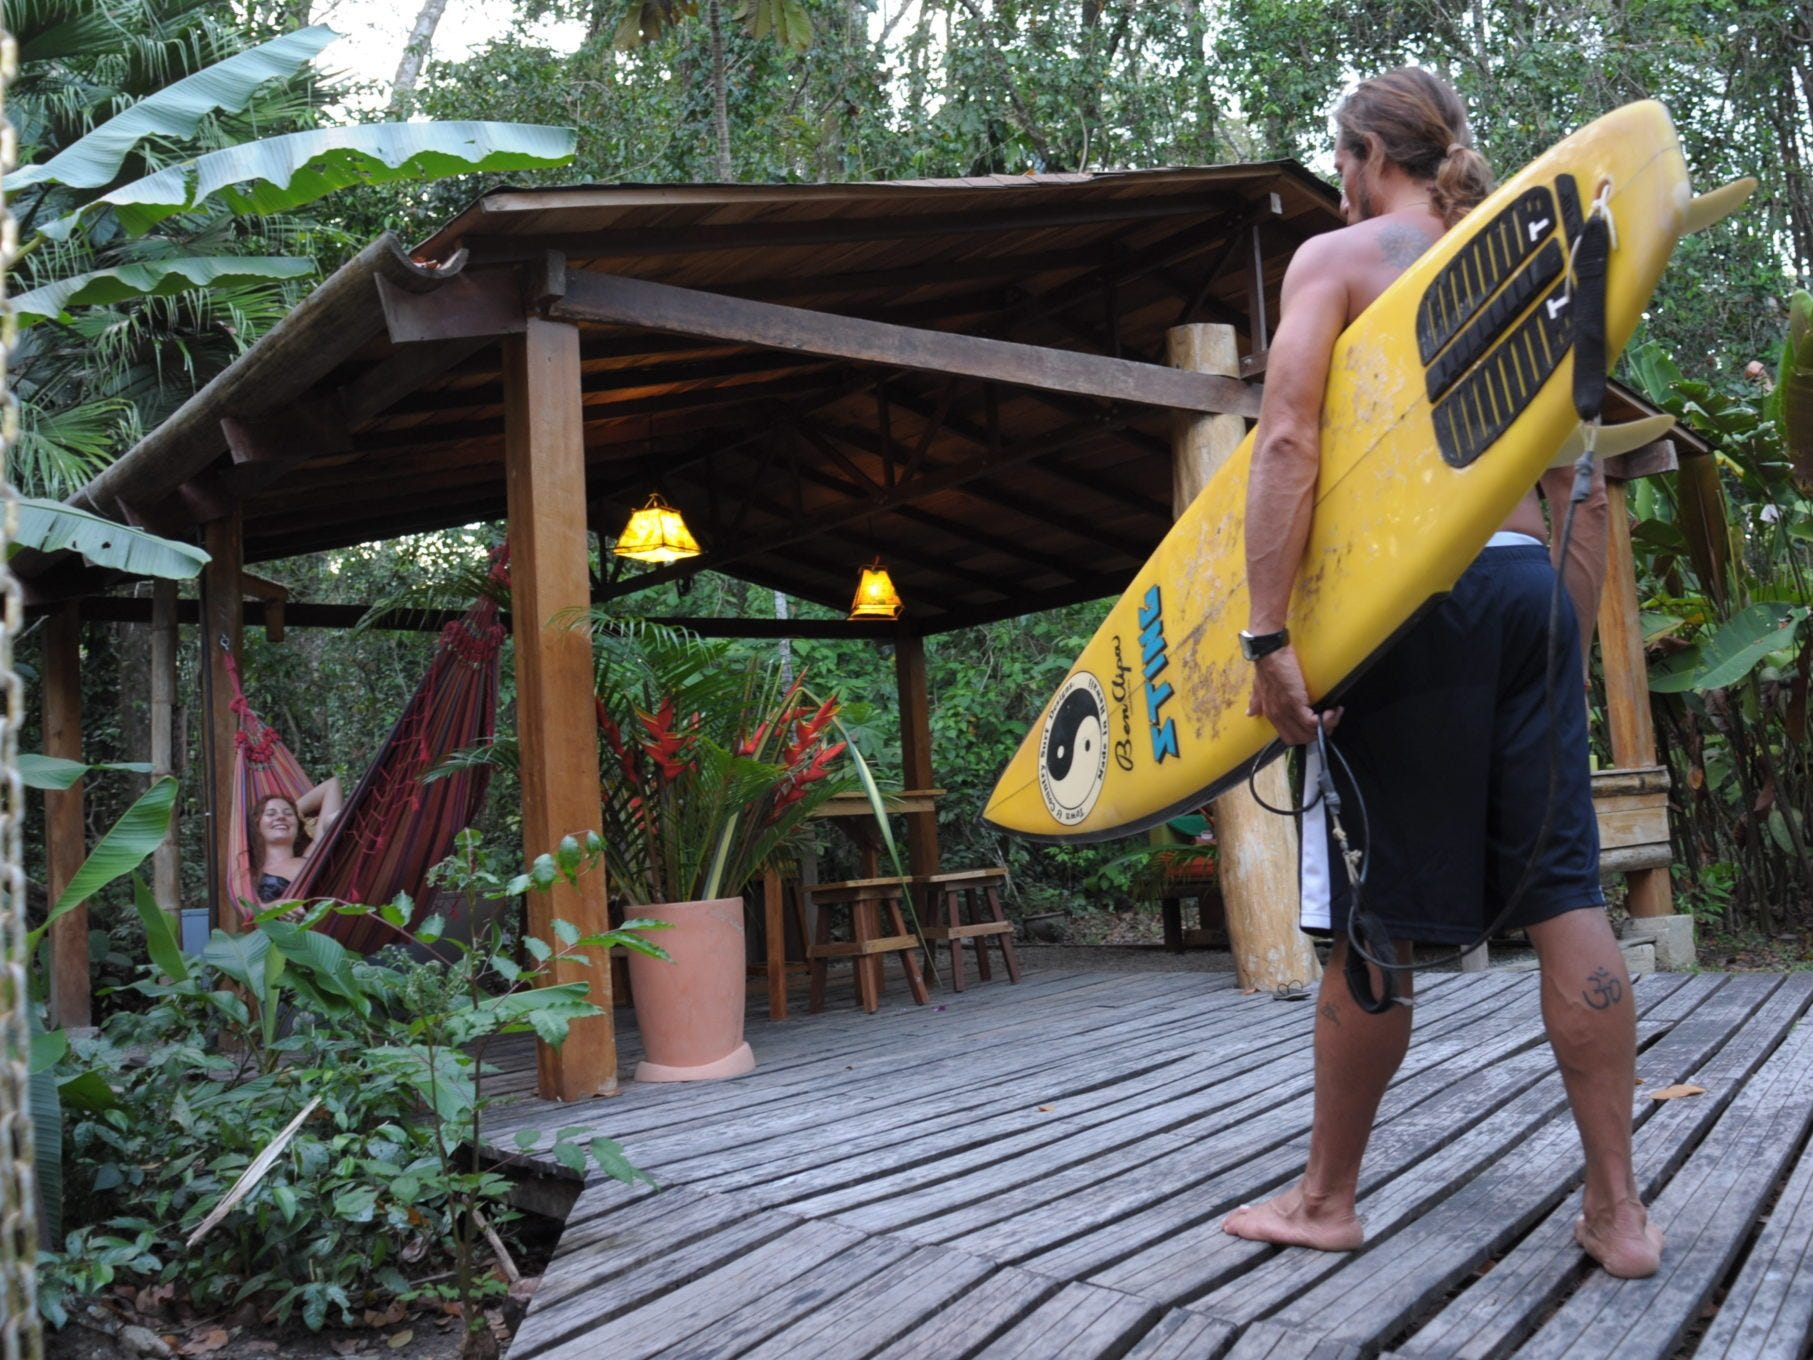 Those looking for an eco-lodge on the beach will want to check out the Costa Rica Tree House Lodge, which is convenient to Puta Uva beach.